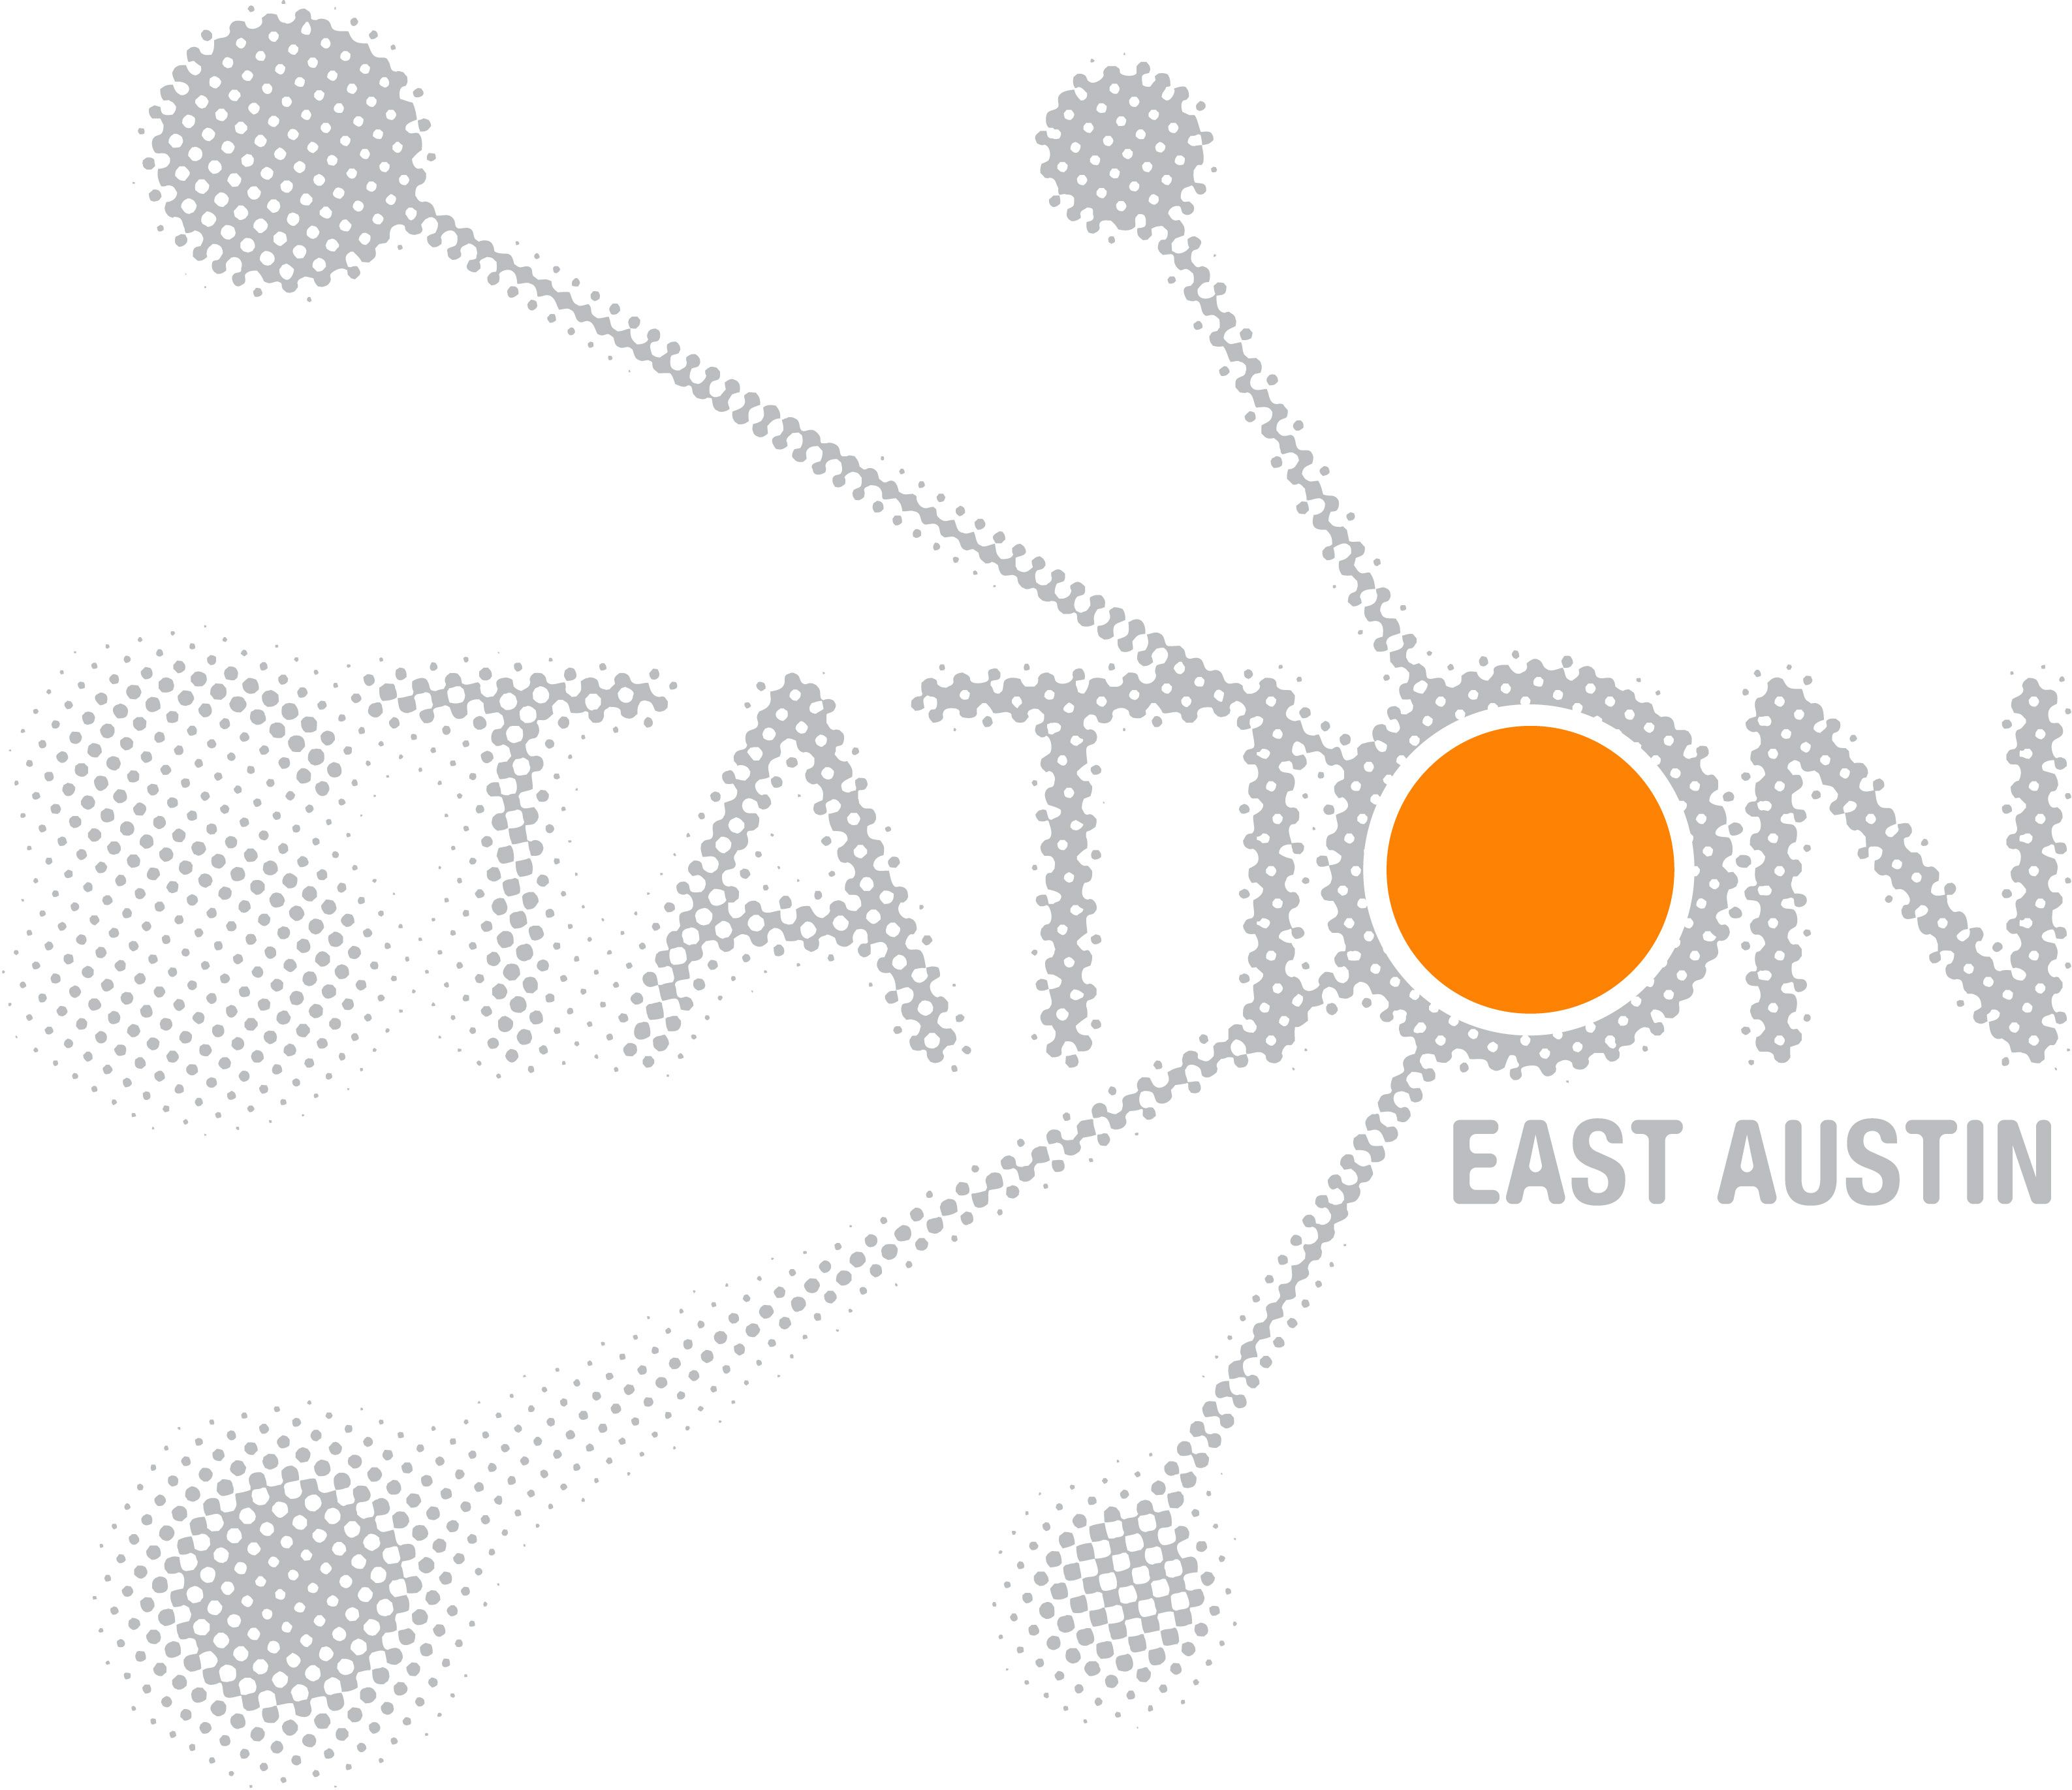 The Station East